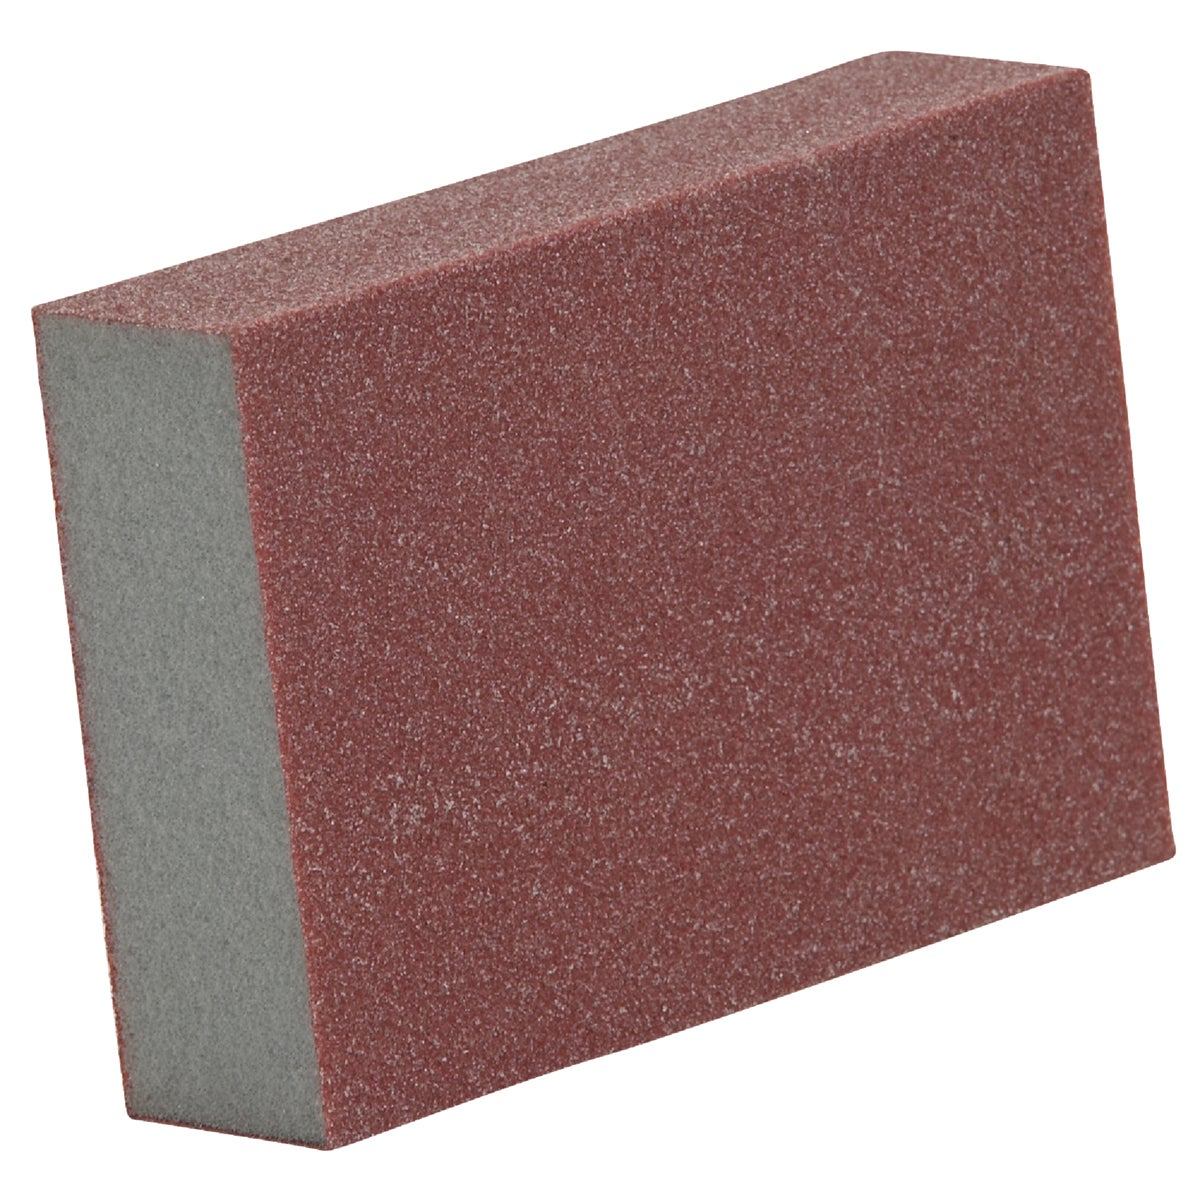 80G SANDING SPONGE - 341665 by Ali Industries Inc